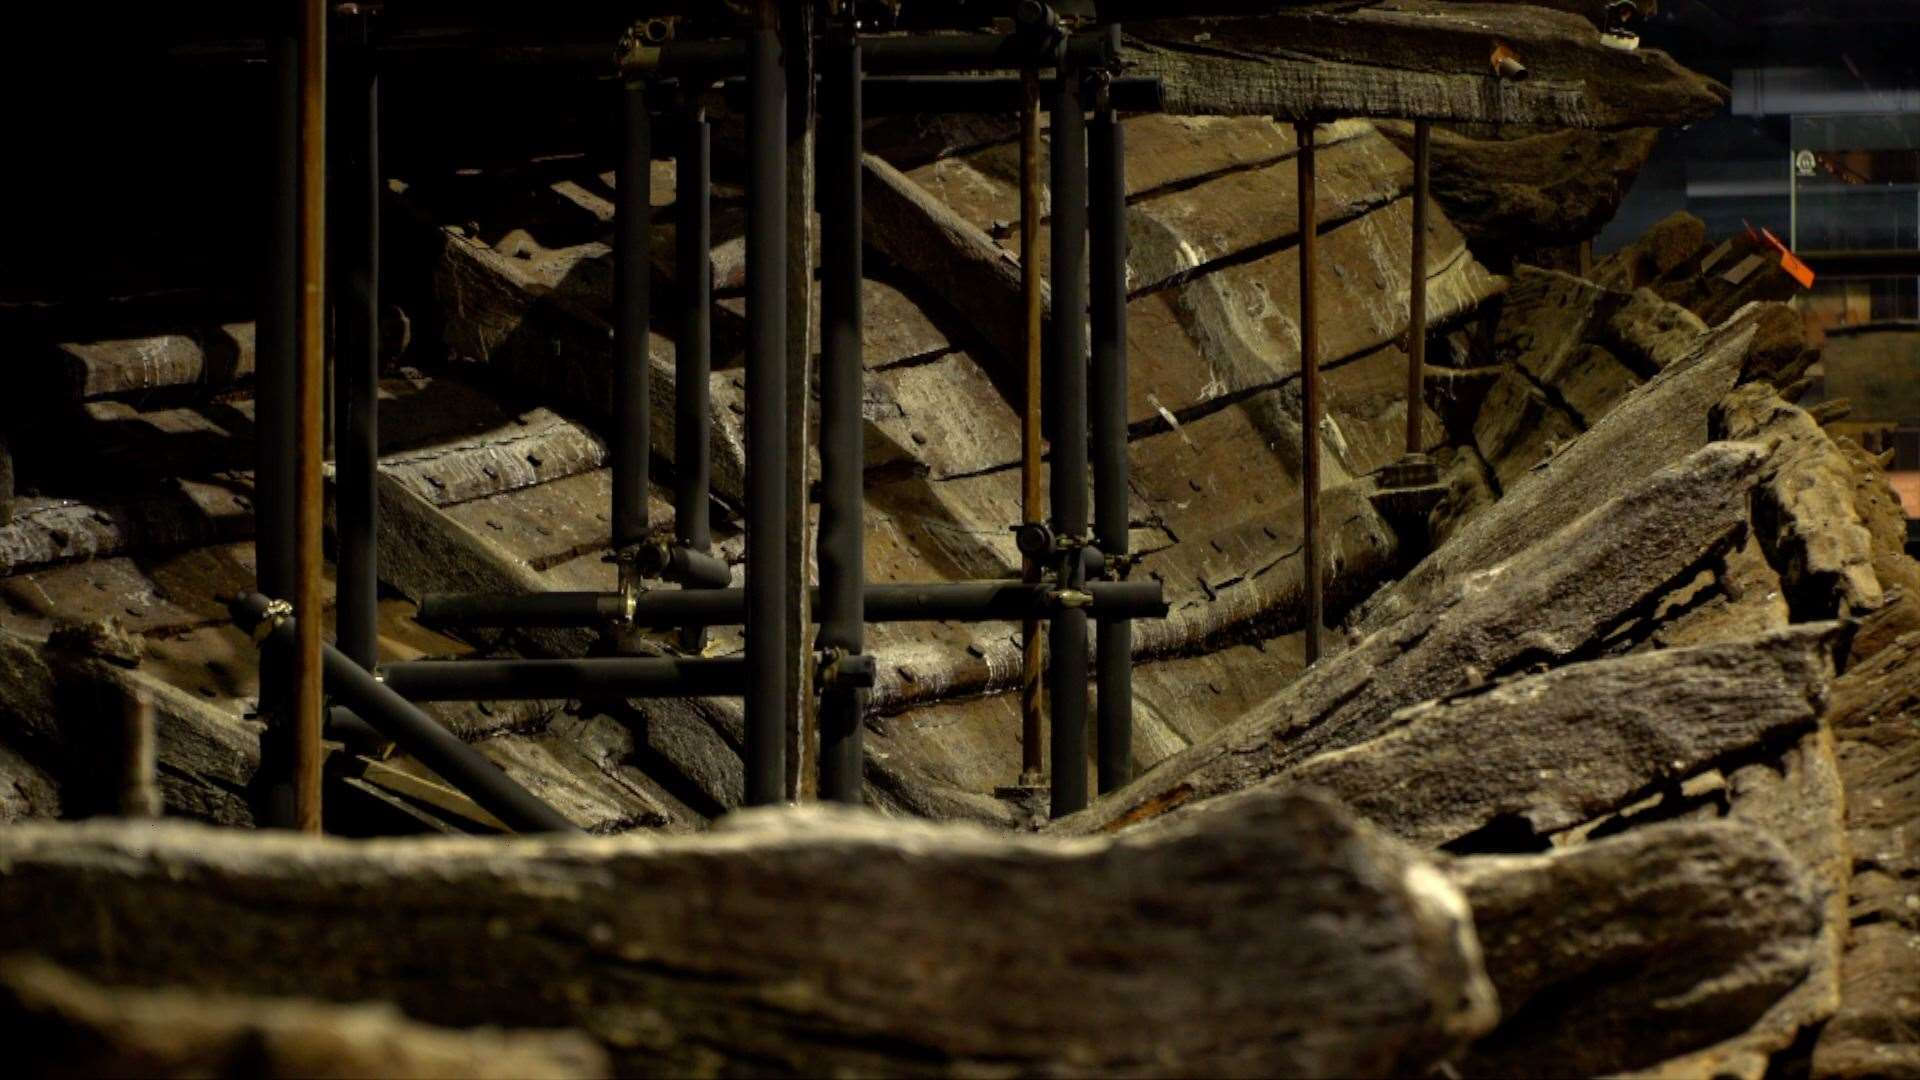 The 'chemical conundrum' of conserving the ship's timbers